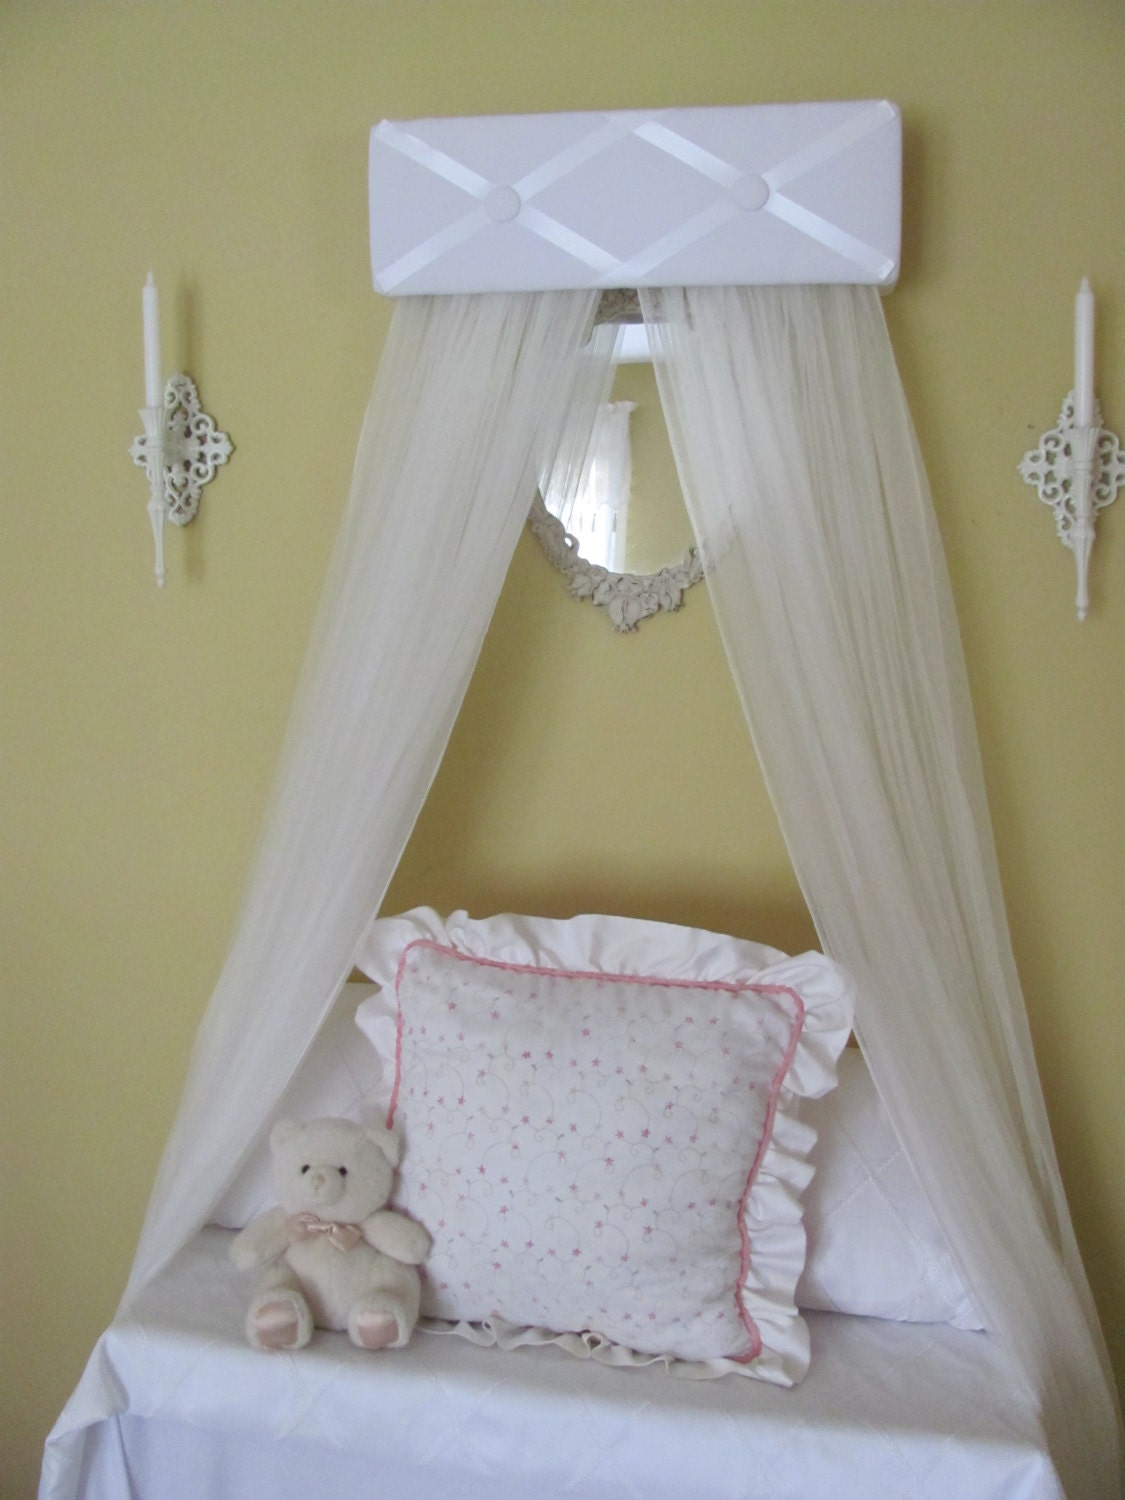 Tufted bed canopy crib white satin princess ballet upholstered for White canopy crib